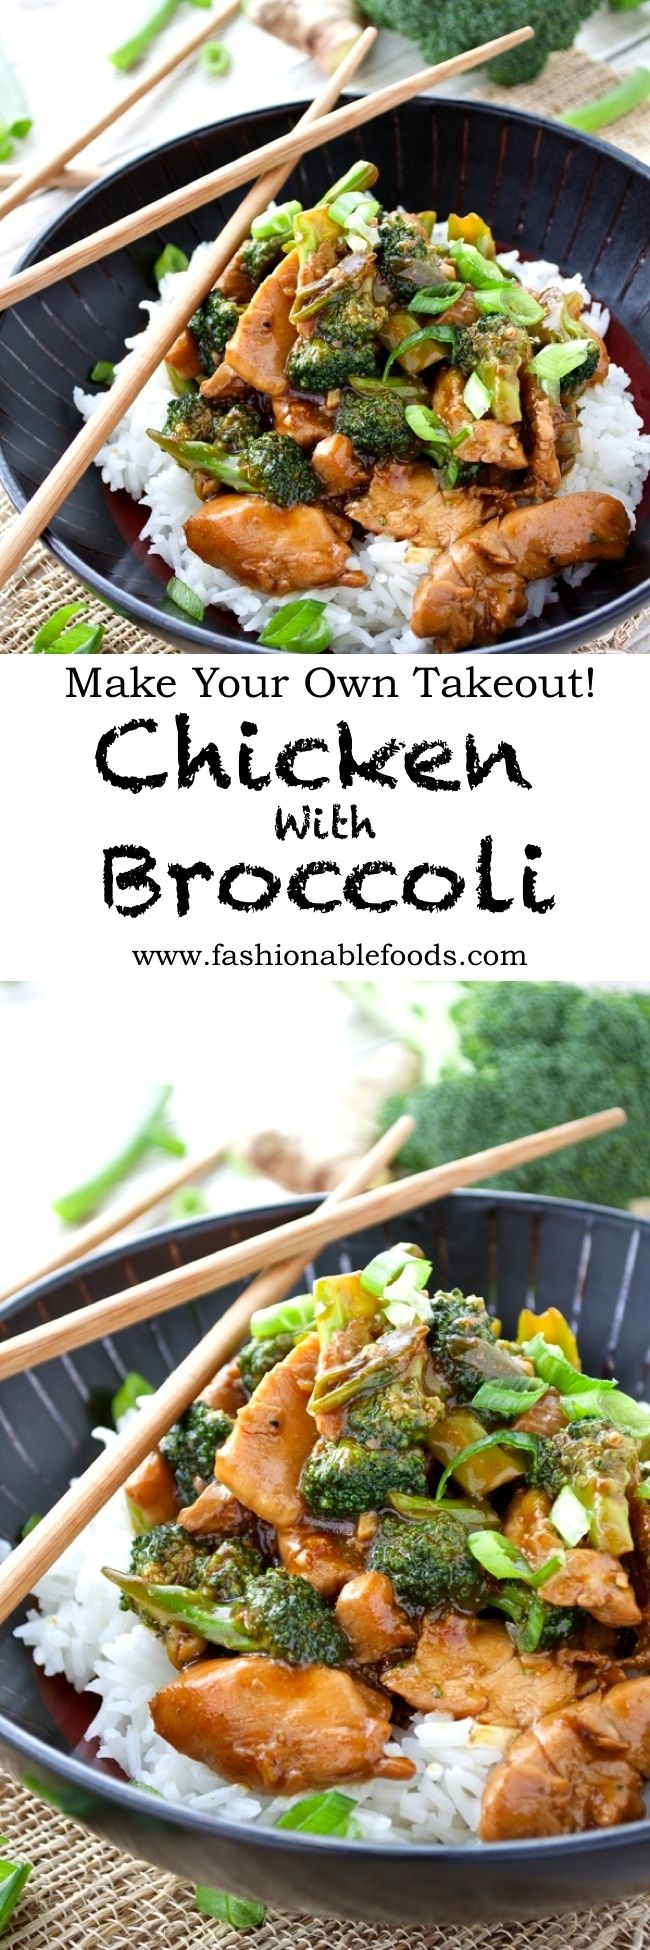 A Chinese takeout classic made at home! It's so delicious and easy that it will make you think twice about delivery!